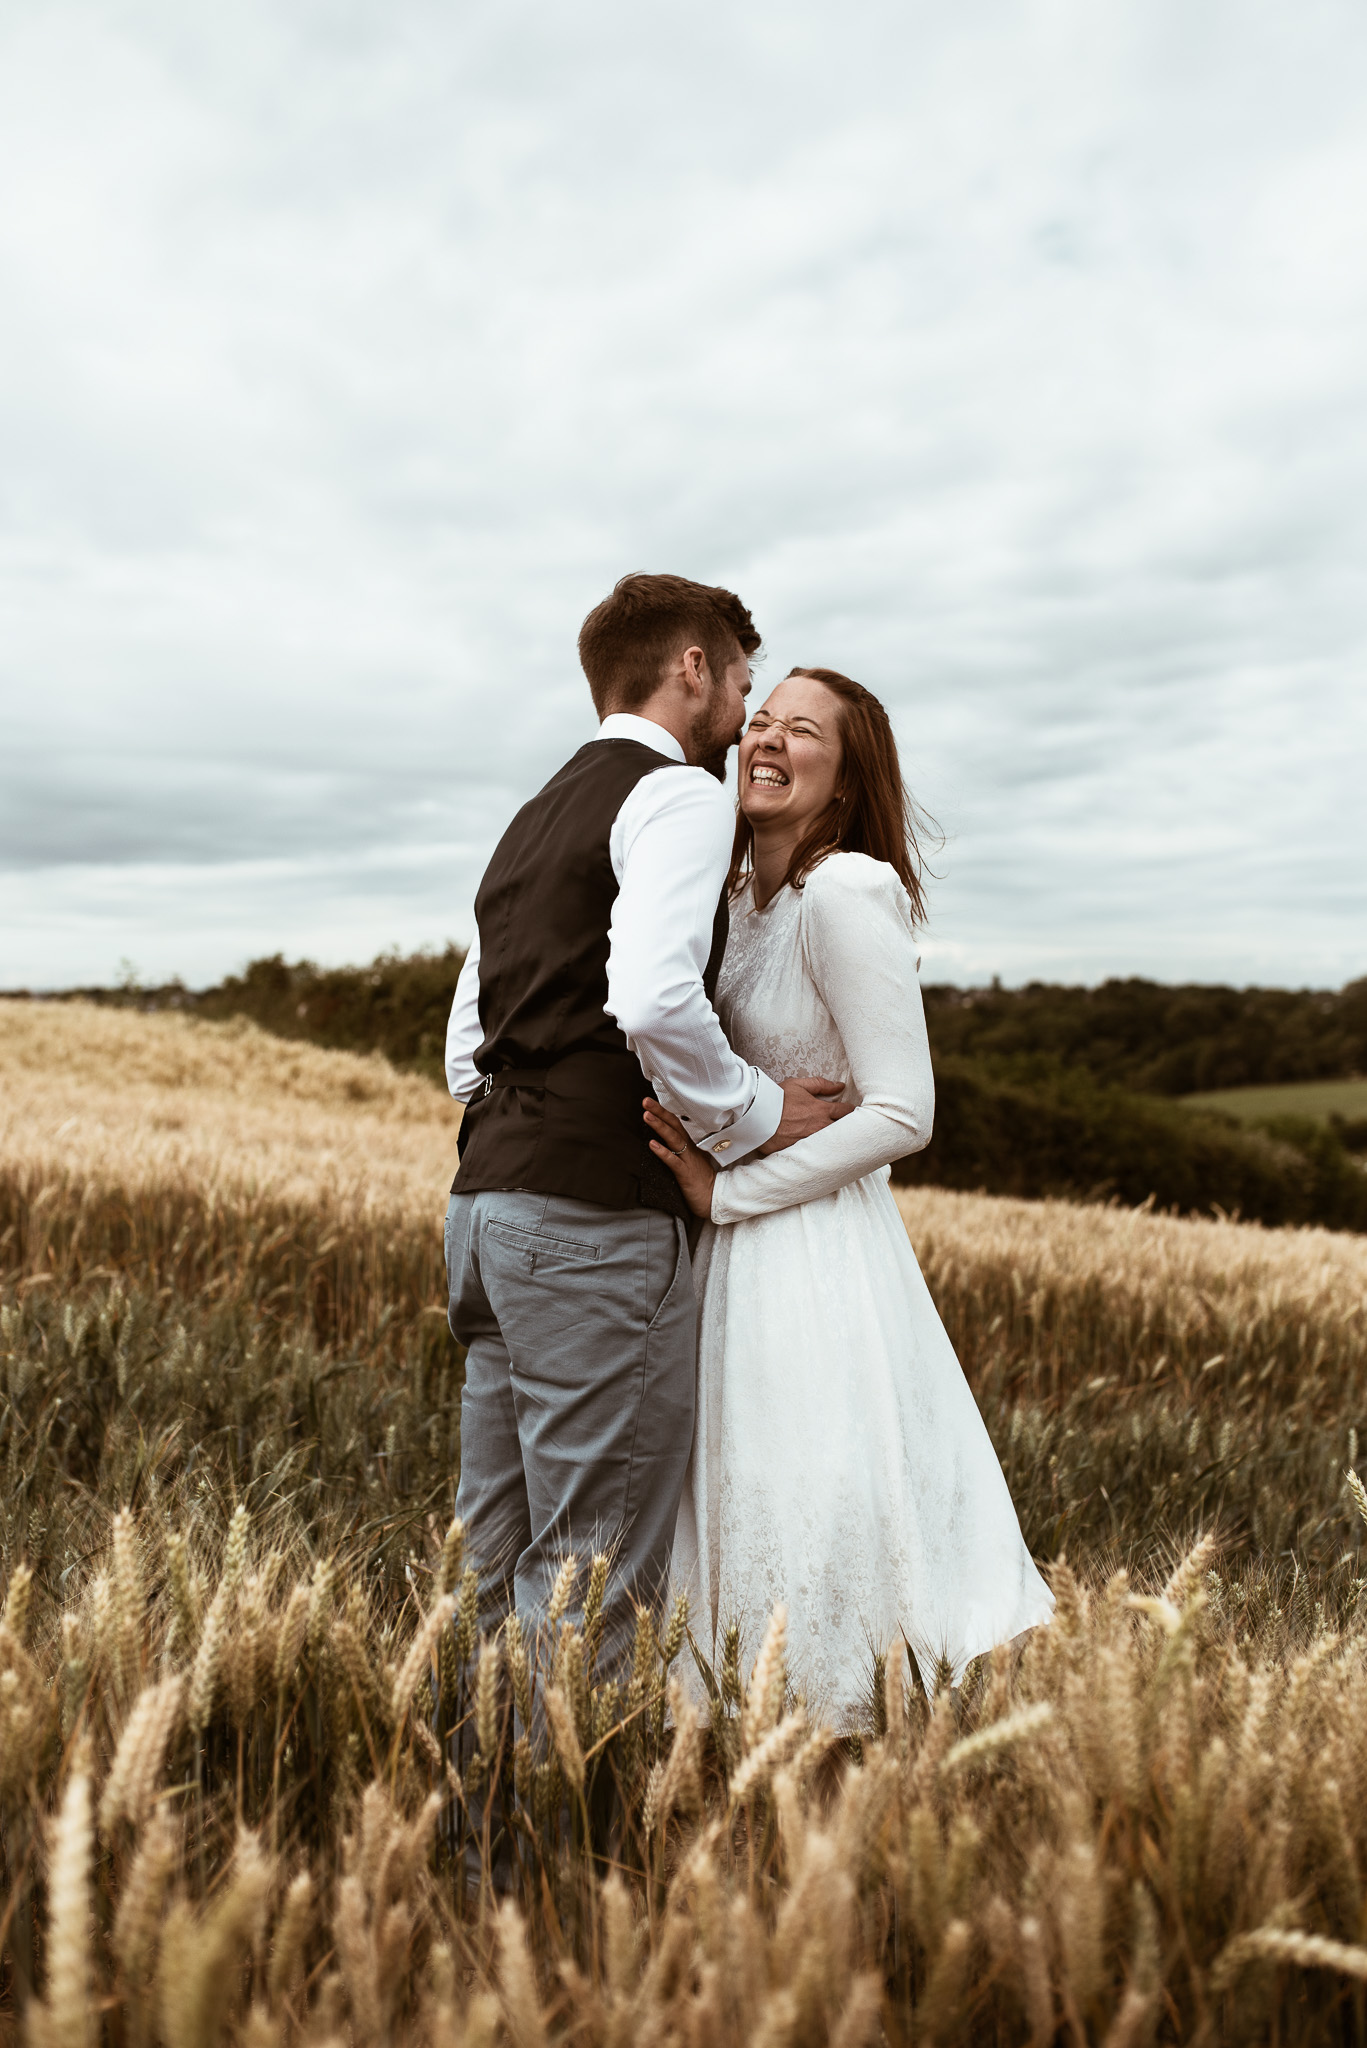 Wedding Photography | Swansea, South Wales